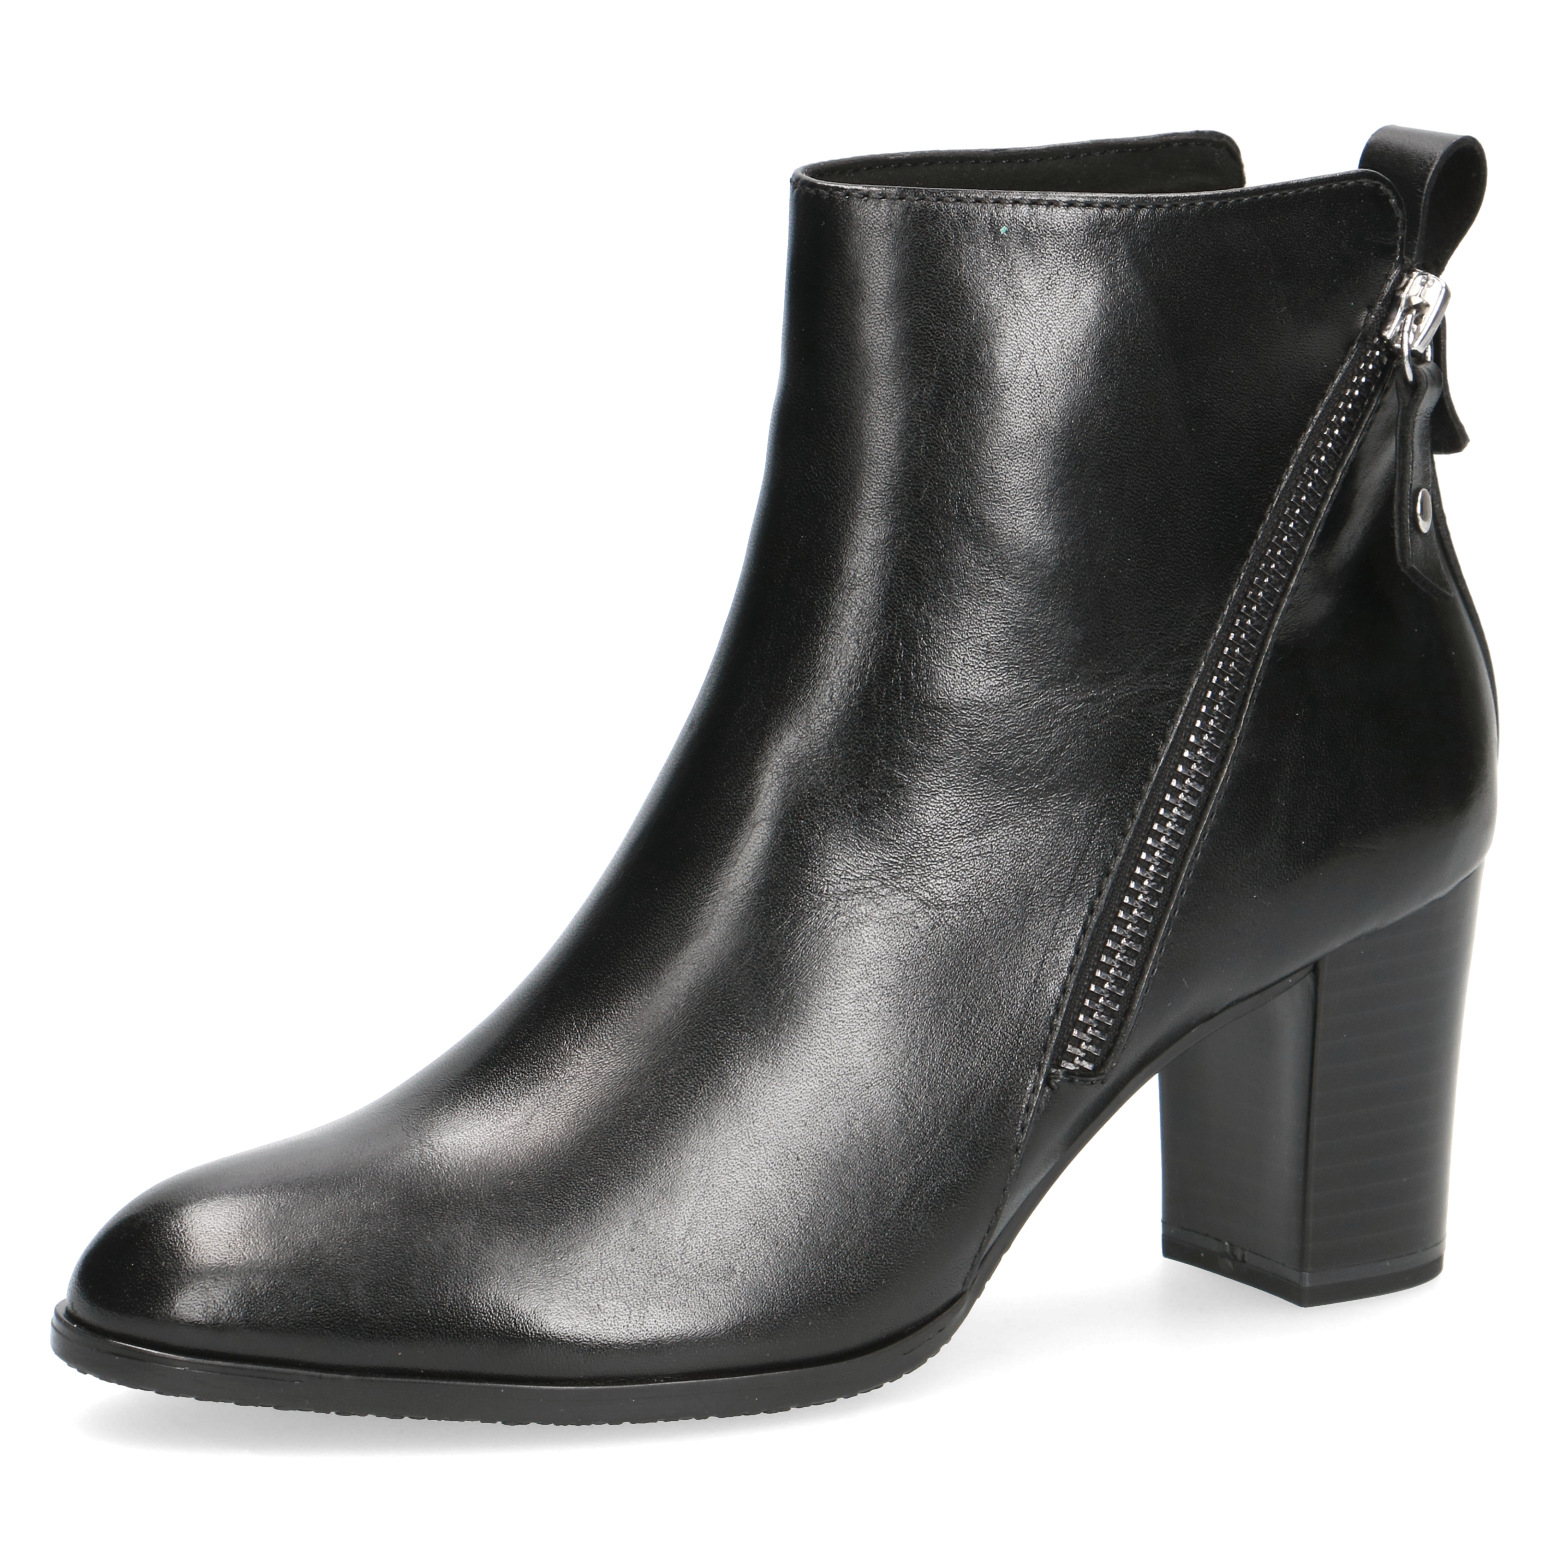 Caprice Black Leather Heeled Ankle Boot